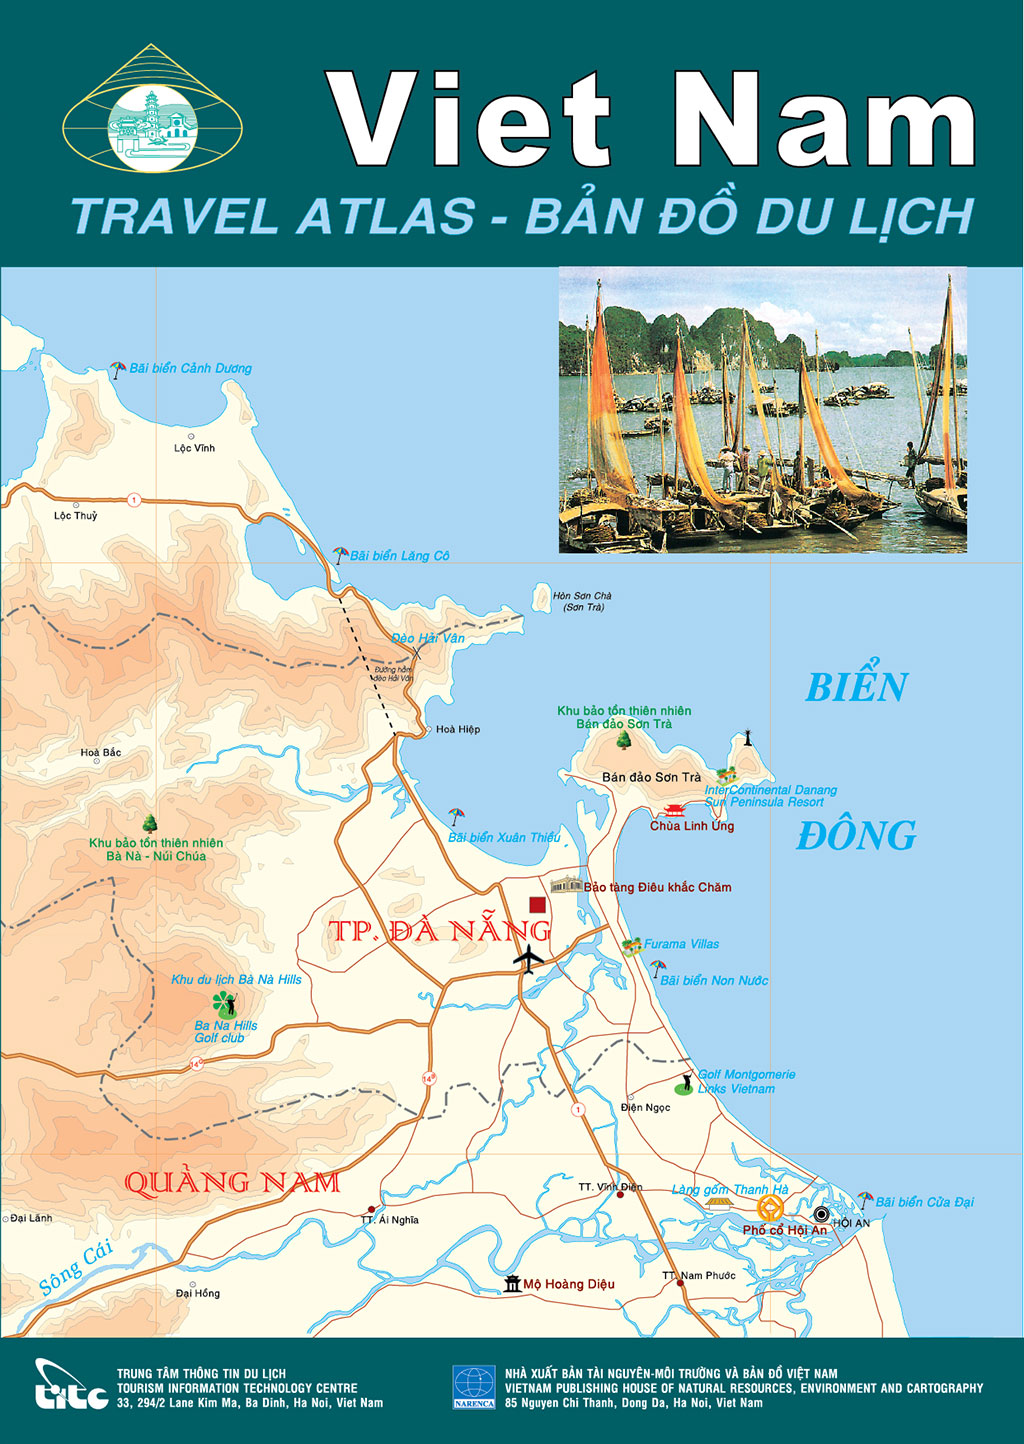 Viet Nam Travel Atlas - the 9th edition